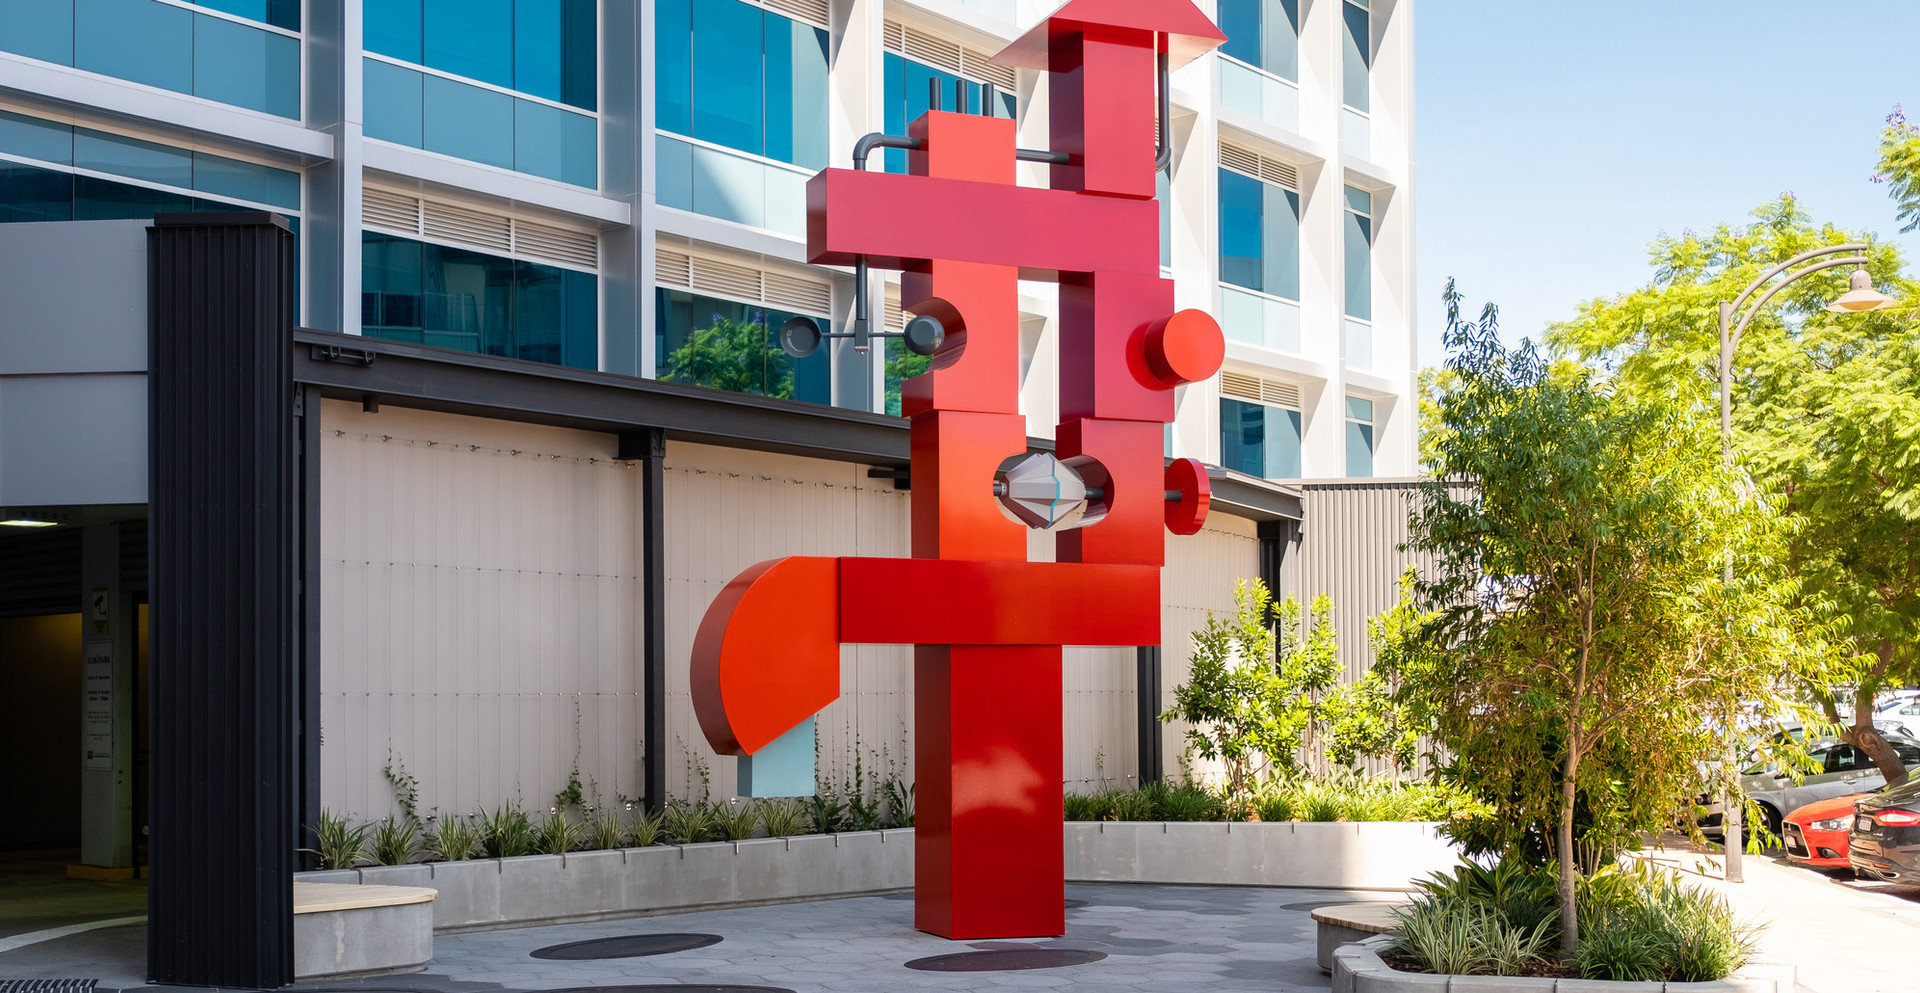 Public artwork – Subiaco (Collaboration with Paul Caporn)